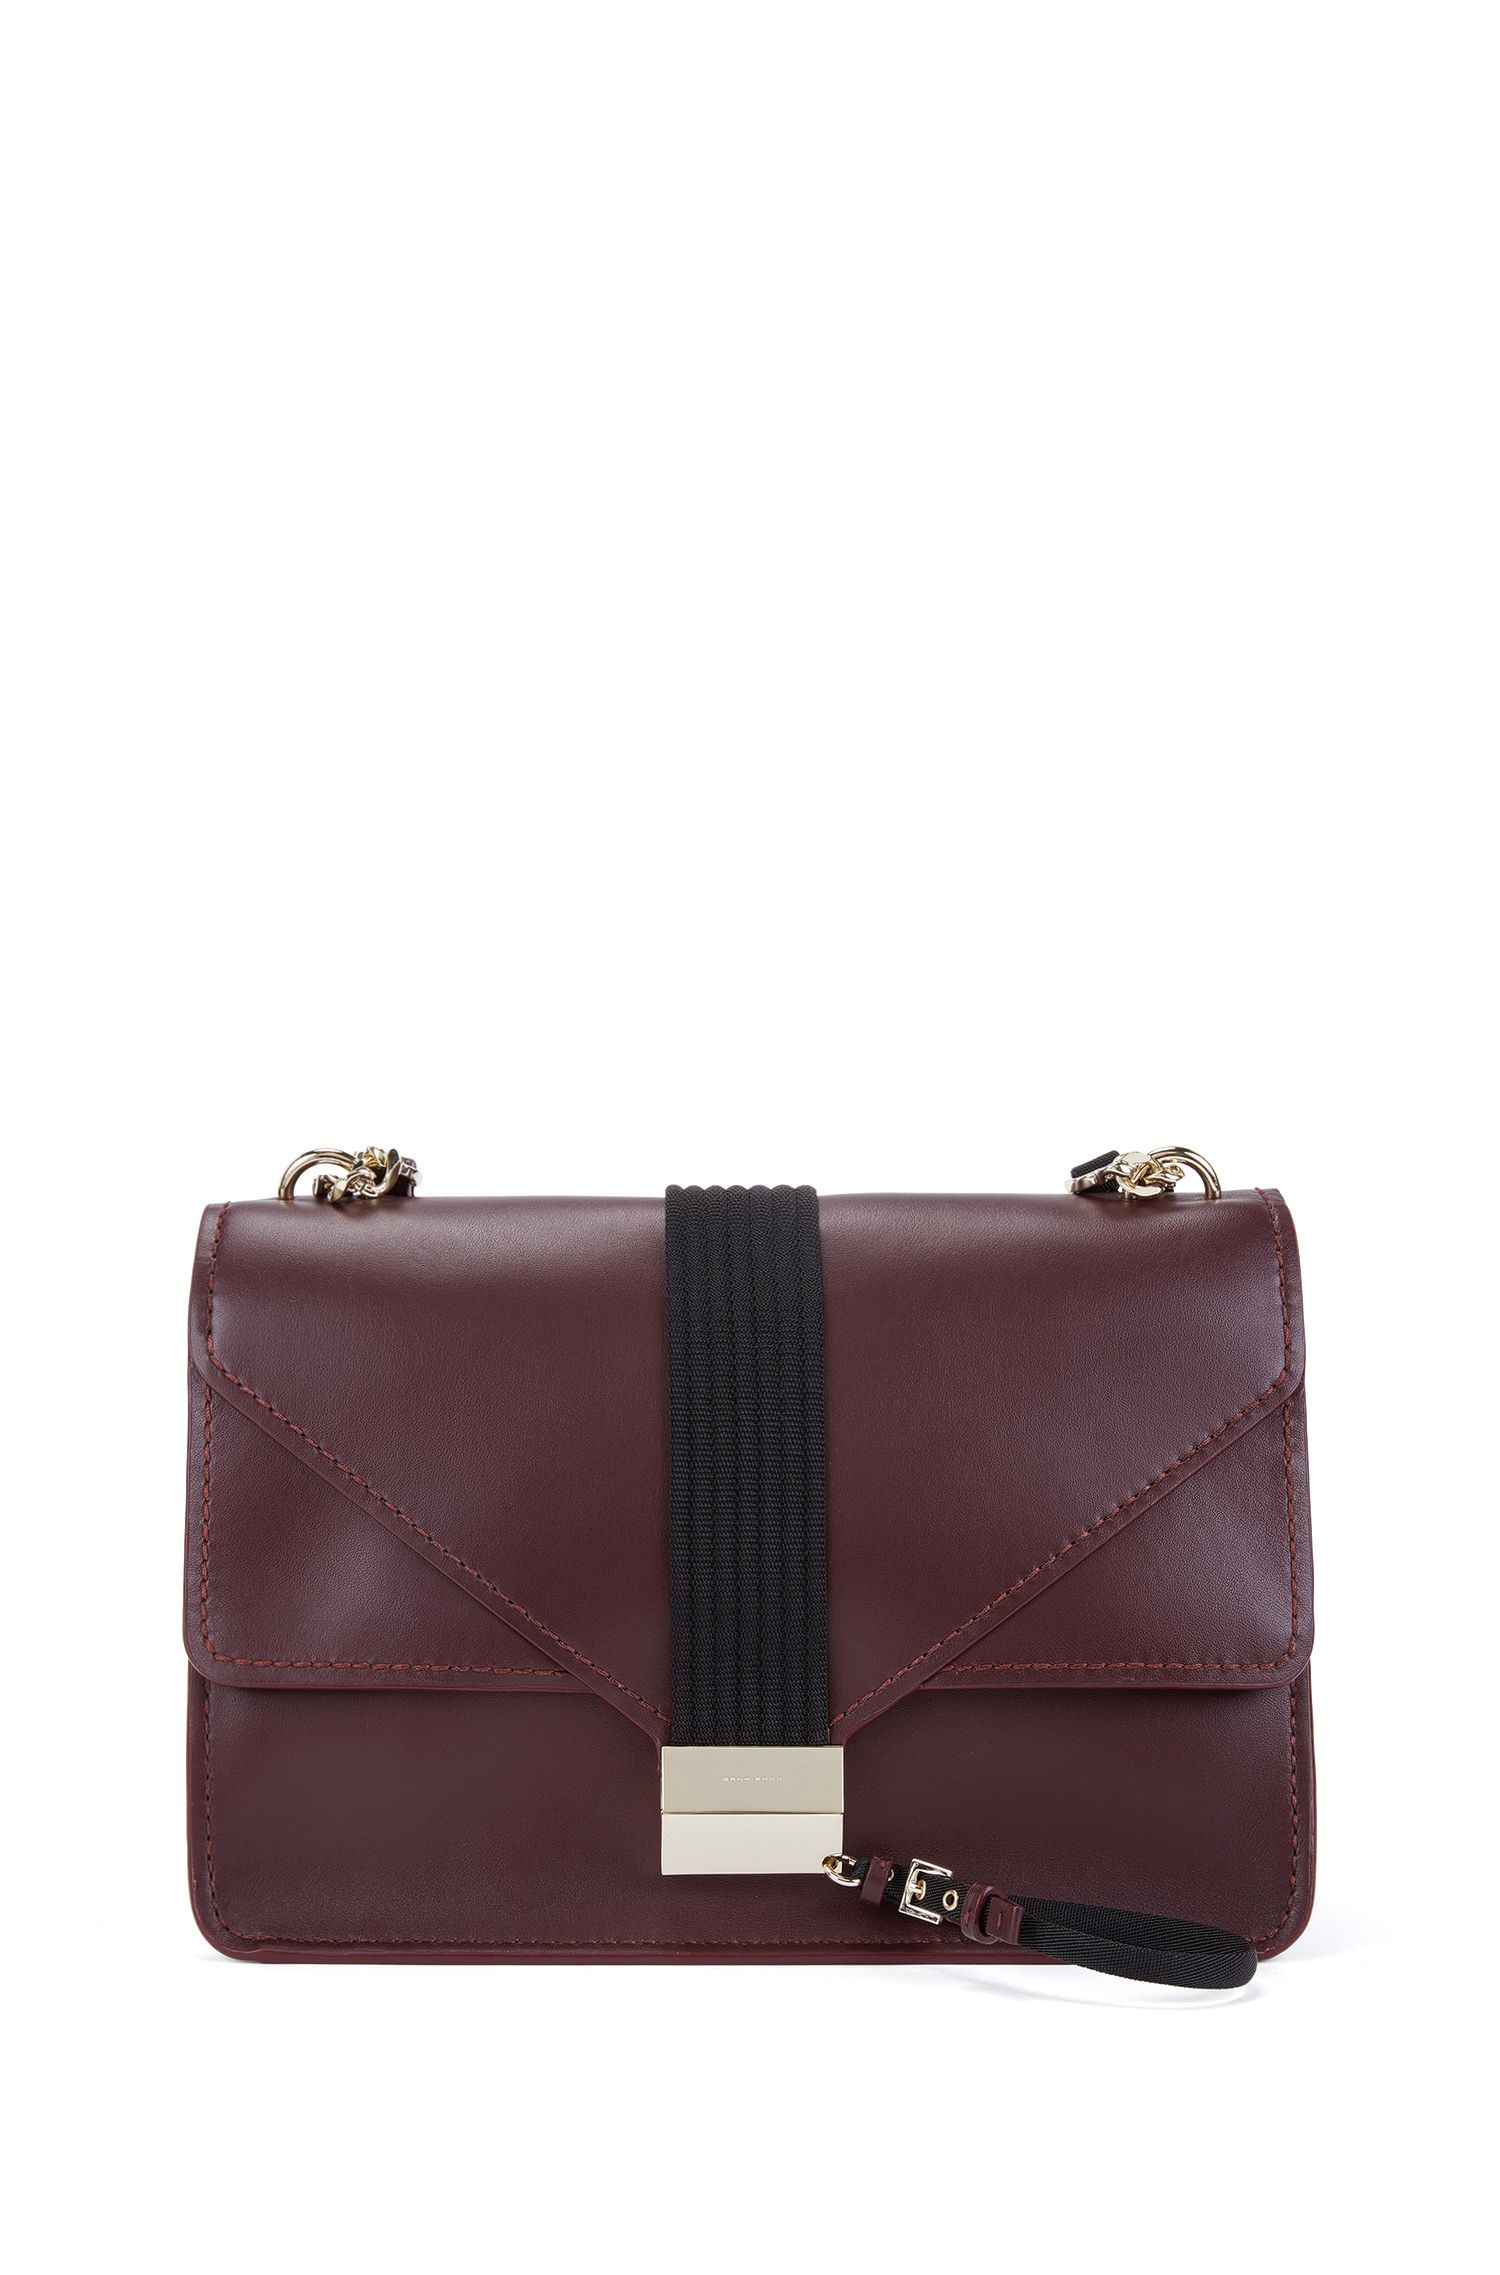 Shoulder bag in smooth Italian leather